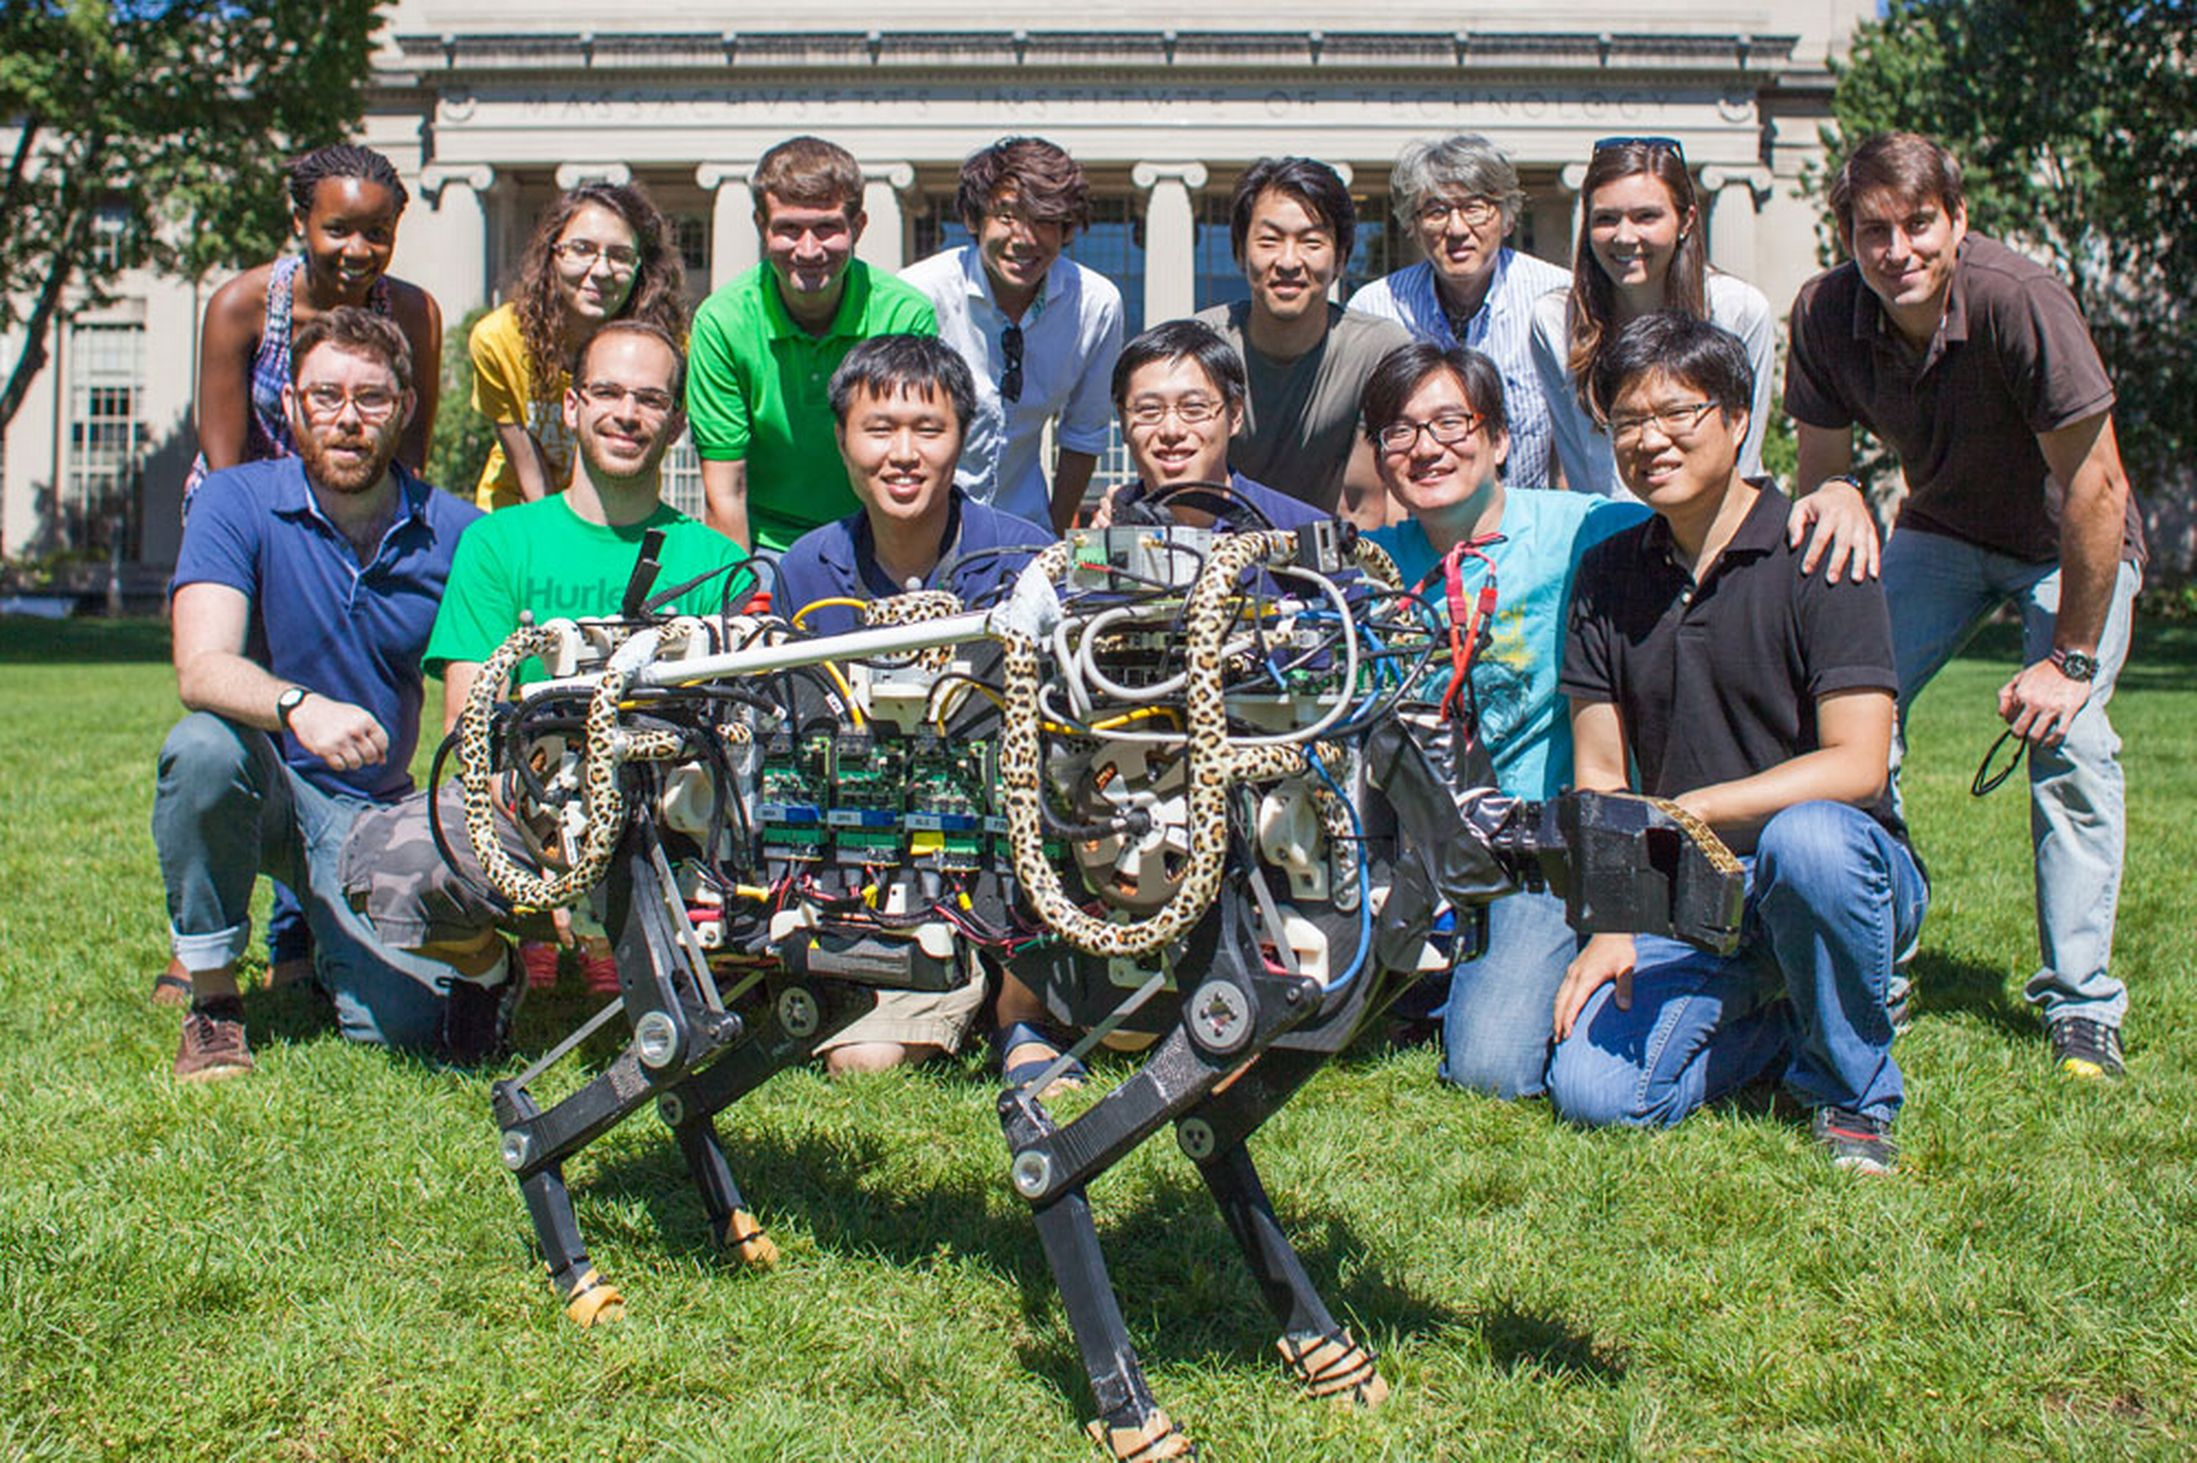 MIT's Robo-Cheetah is Silent and Fast4